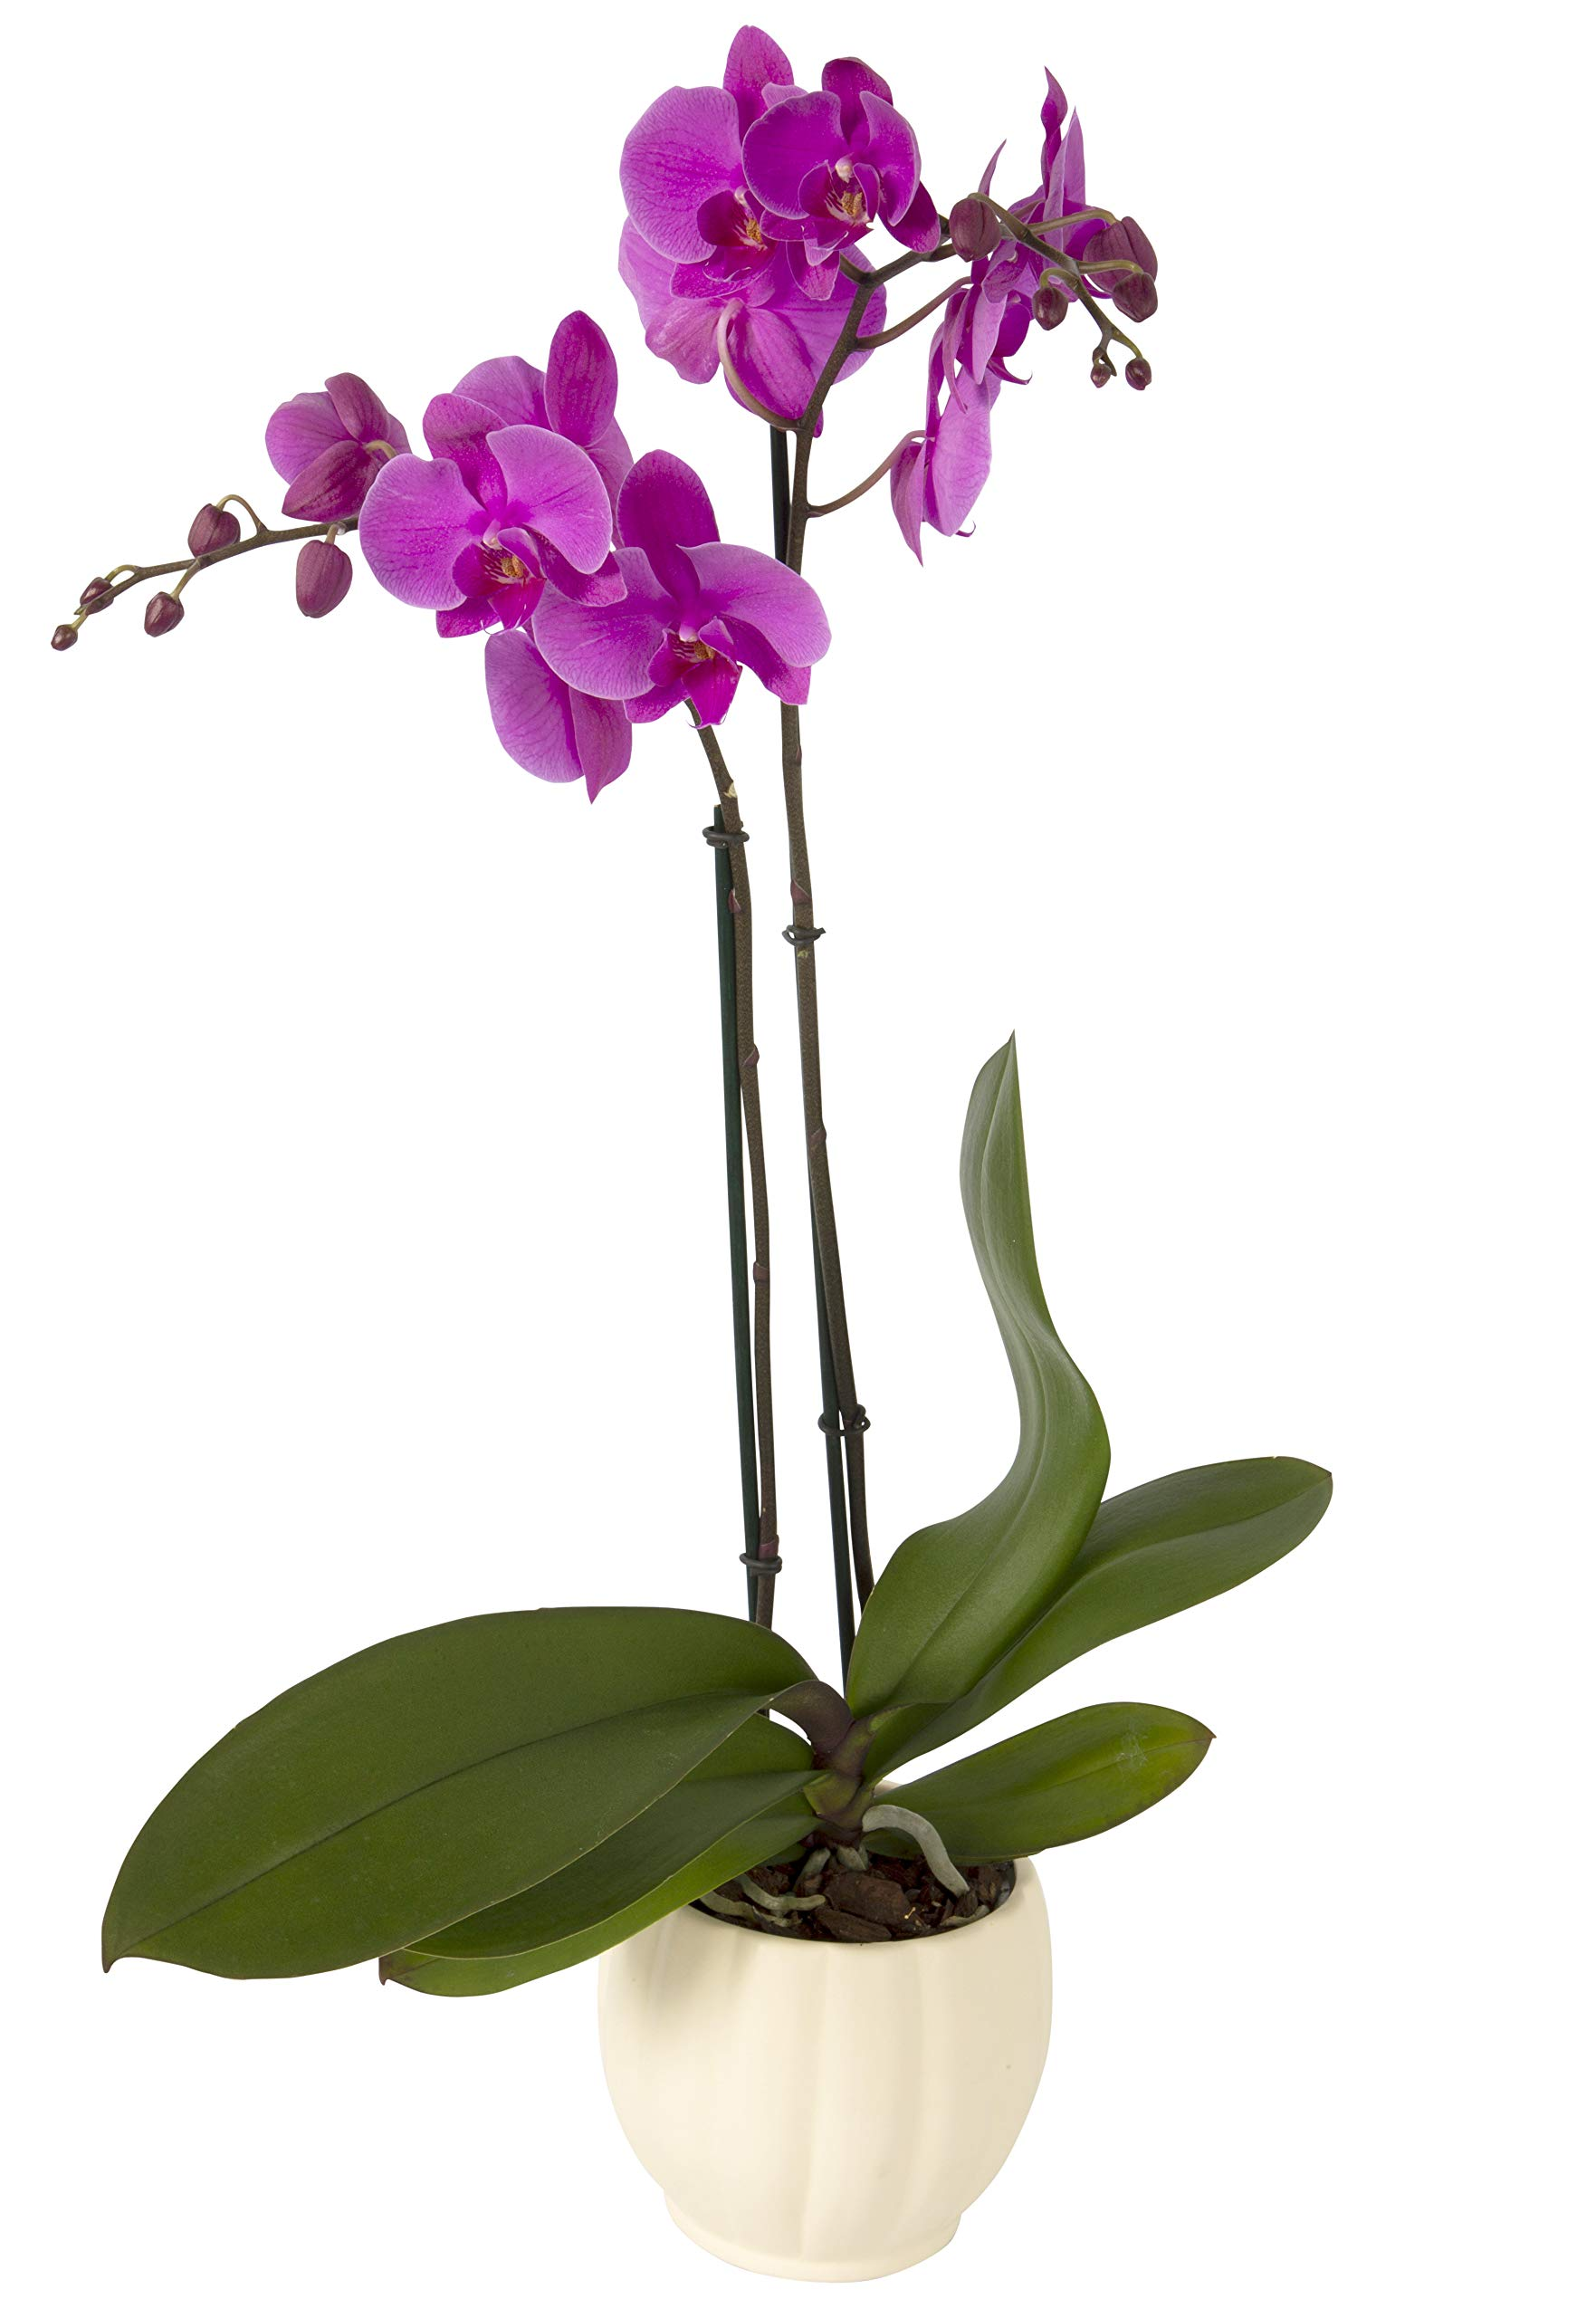 Color Orchids Live Blooming Double Stem Phalaenopsis Orchid Plant in Ceramic Pot, 20'' - 24'' Tall Purple